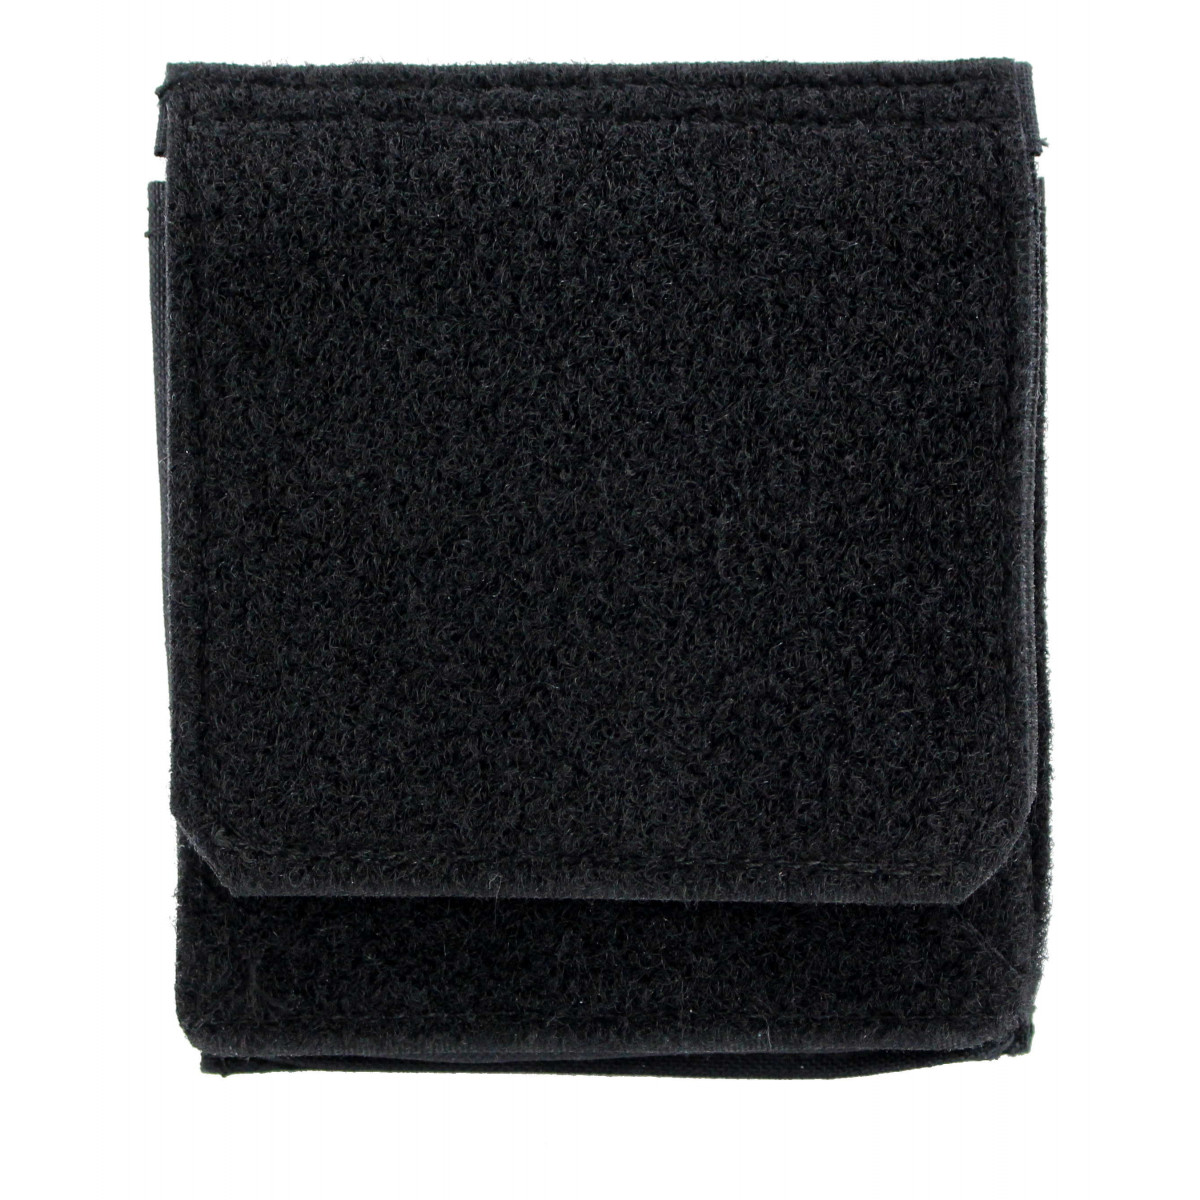 Counterweight Pouch for Helmet Cover